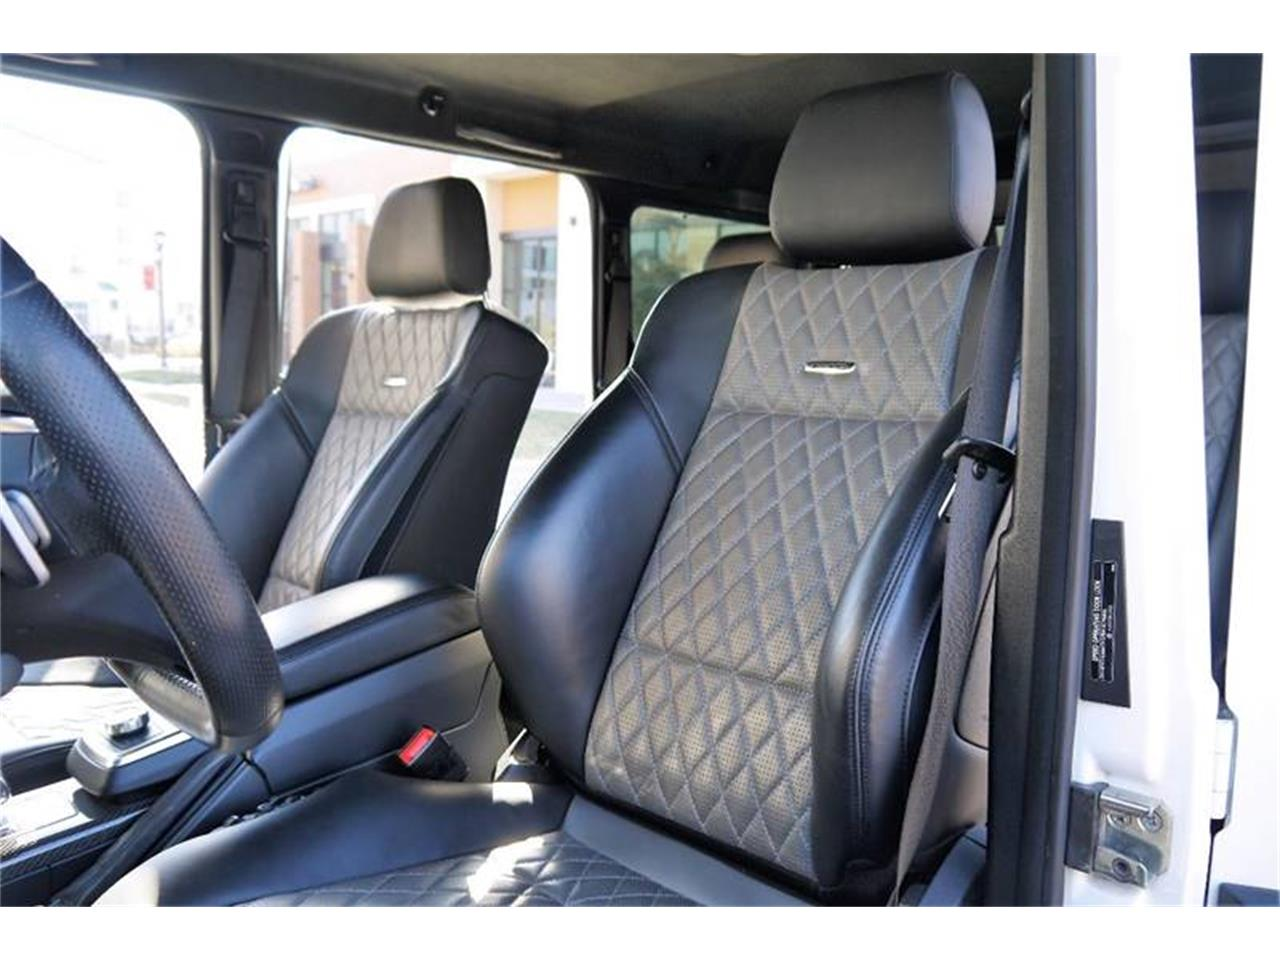 Large Picture of 2015 Mercedes-Benz G-Class located in Brentwood Tennessee Auction Vehicle - MOCR